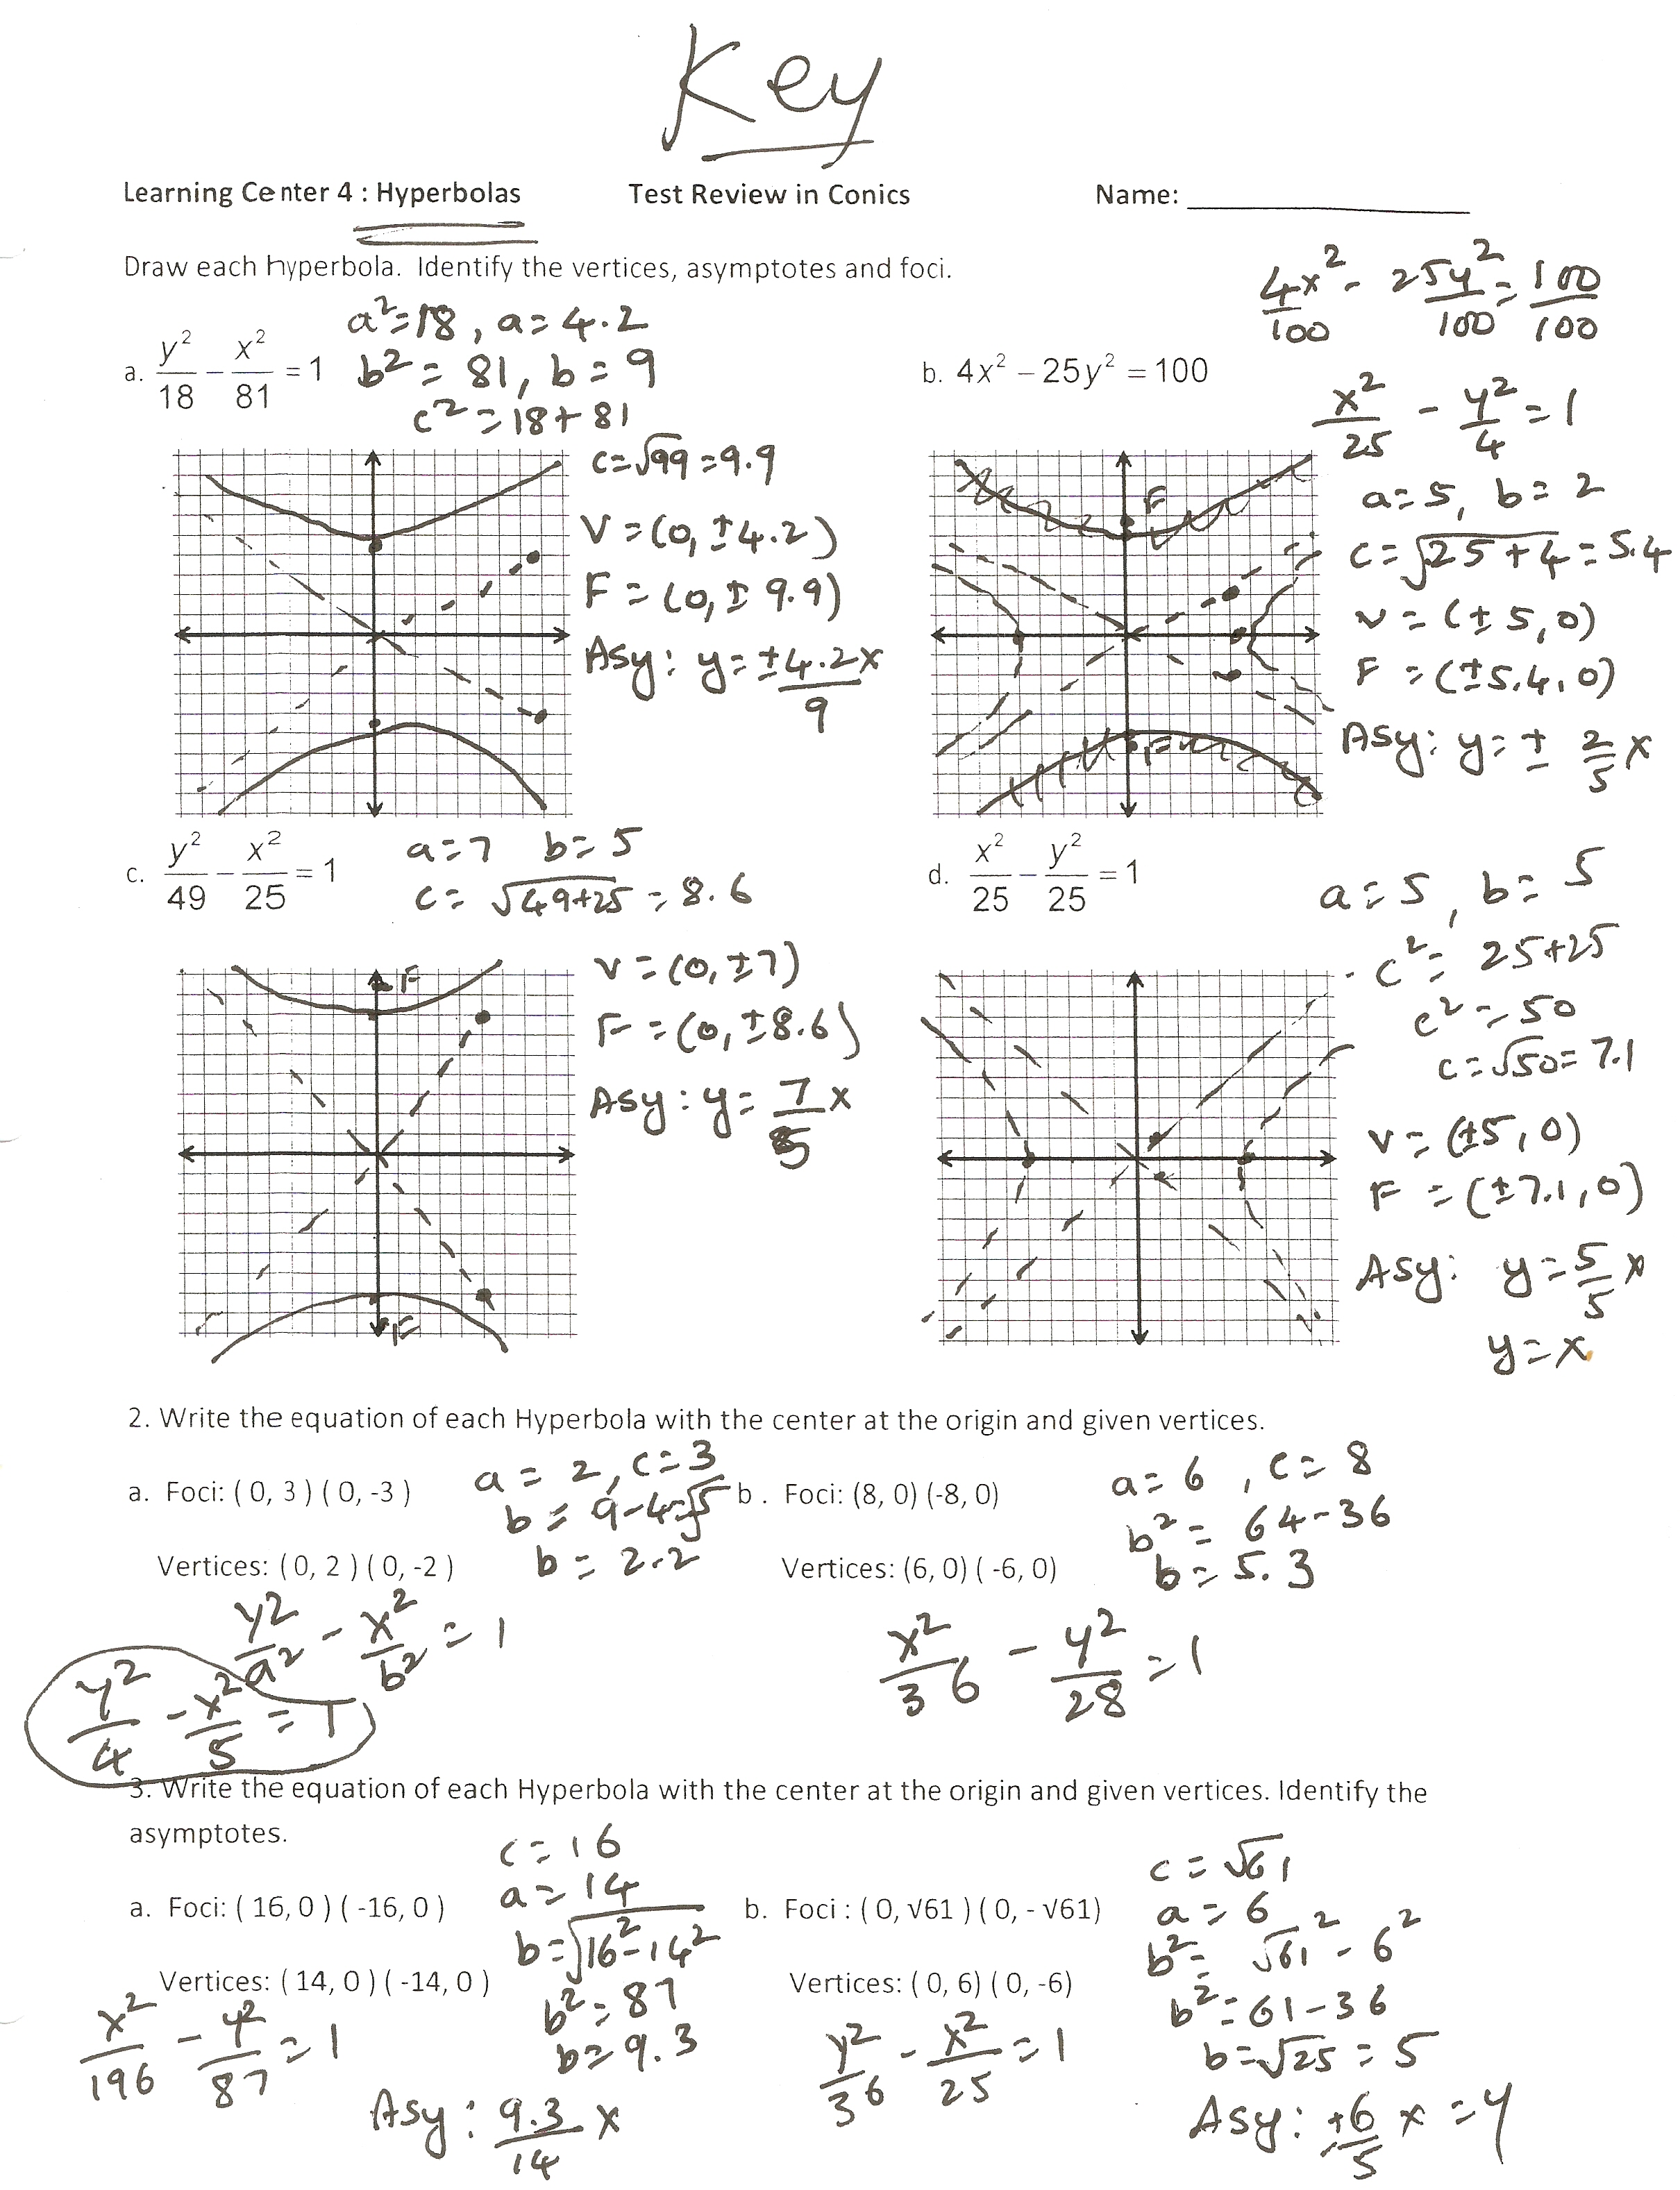 Worksheets Hyperbola Worksheet dr yadavalli april 2011 view this photo hyperbolas